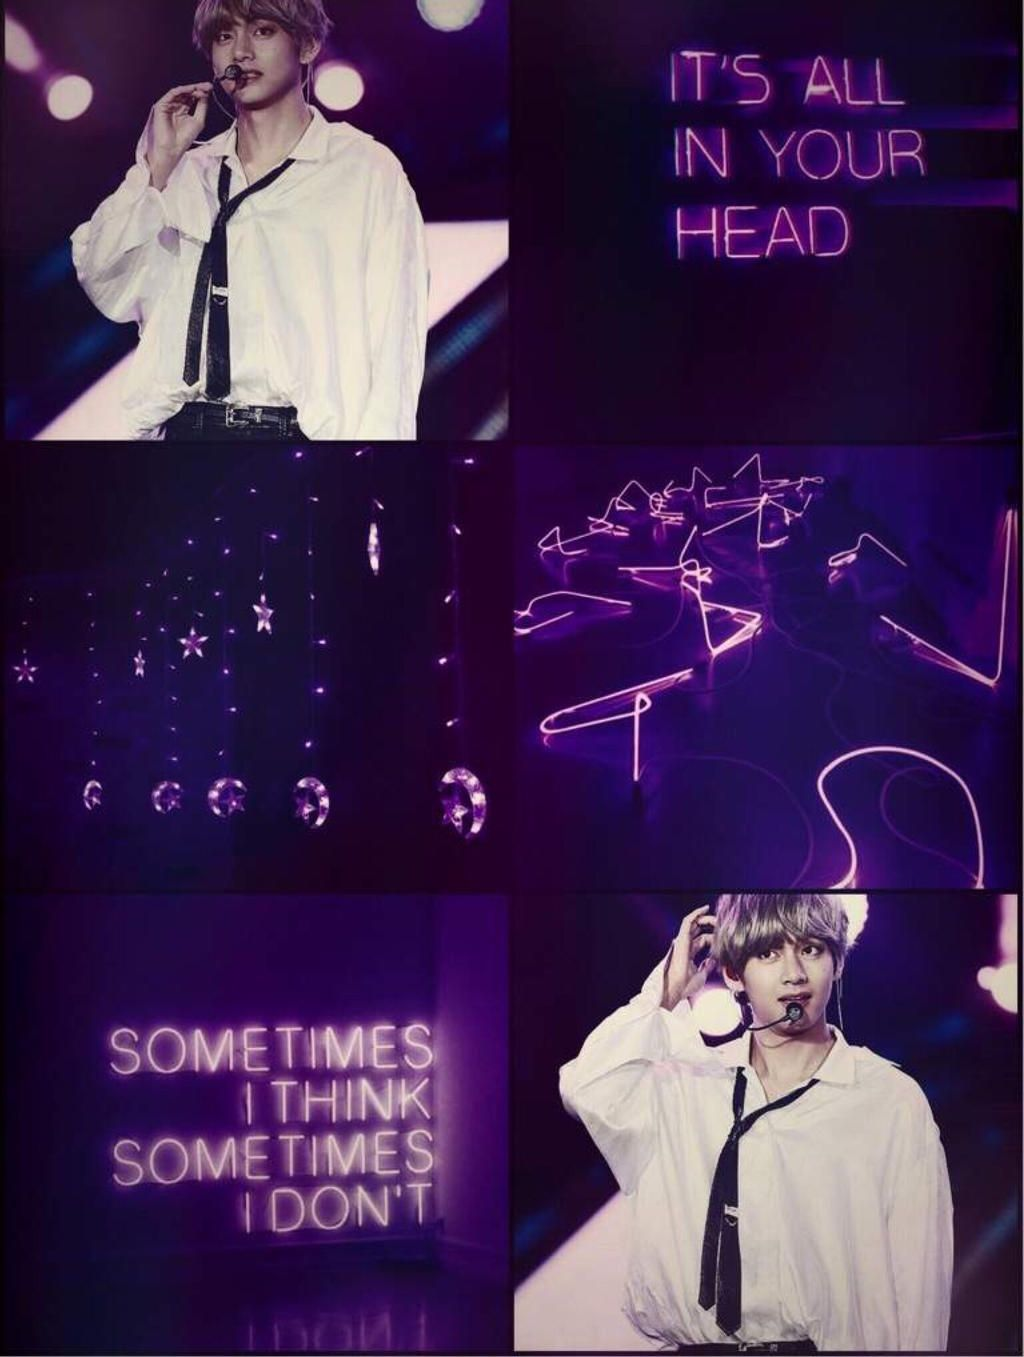 bts v neon purple aesthetic by beaxh bxtch dbth819 fullview